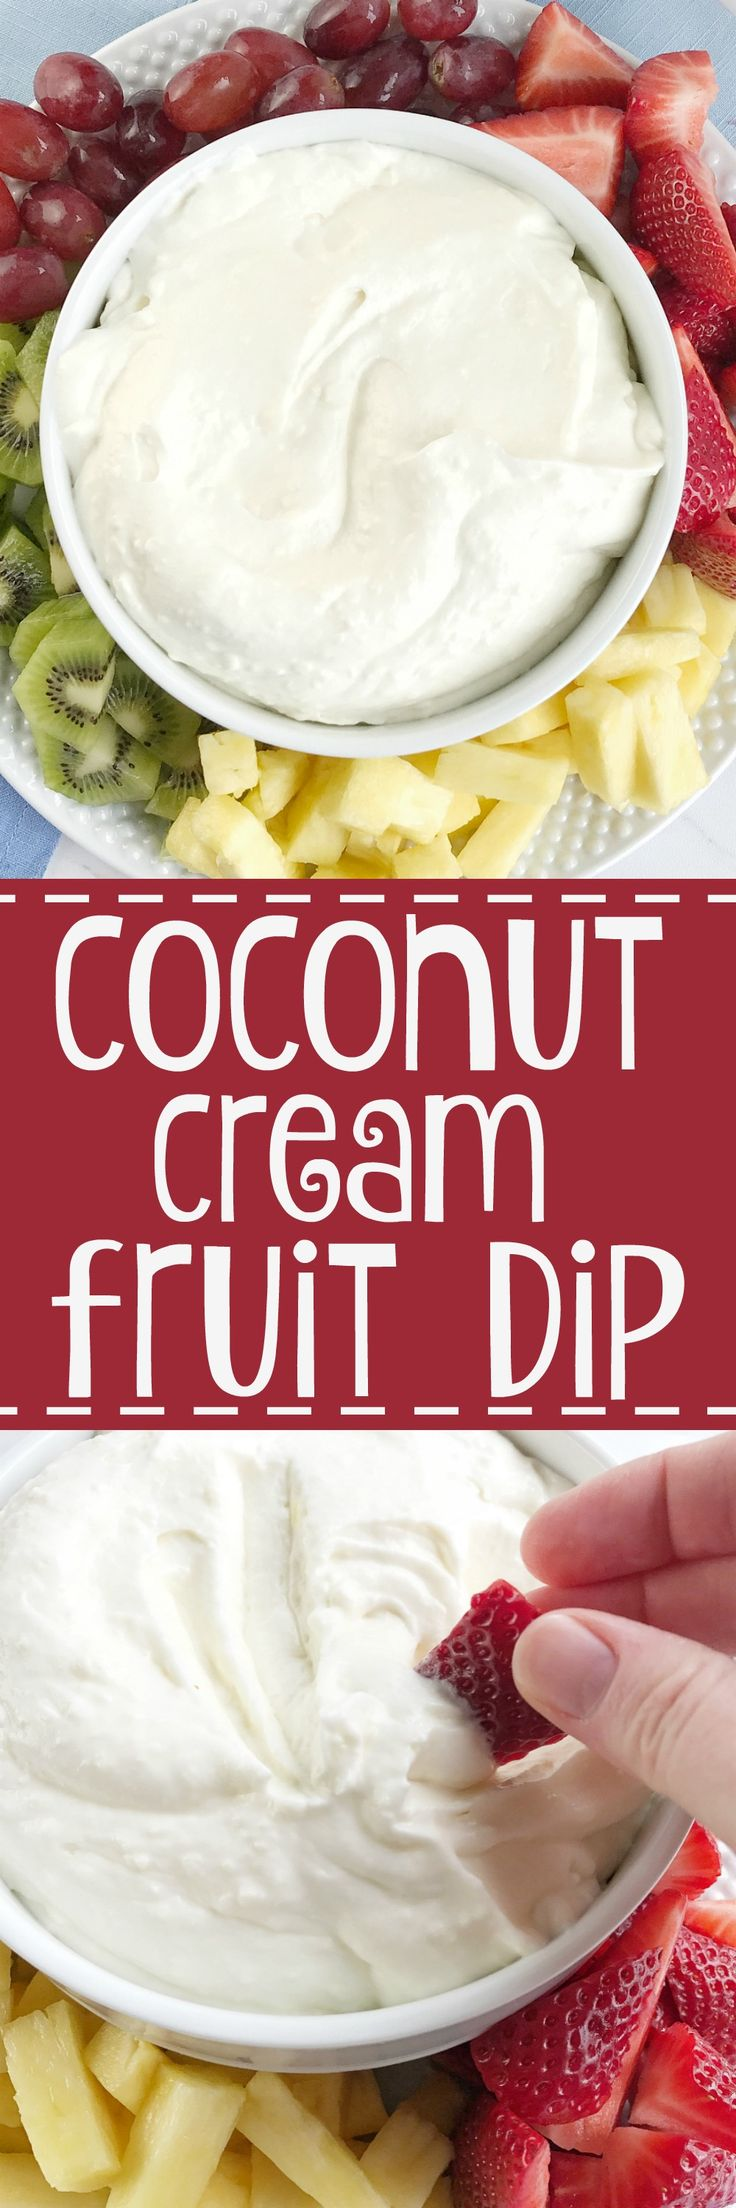 Coconut cream fruit dip is loaded with creamy coconut flavor and it's only 4 ingredients! It's so light and is the perfect summer fruit dip. Serve it with your favorite fresh fruit.